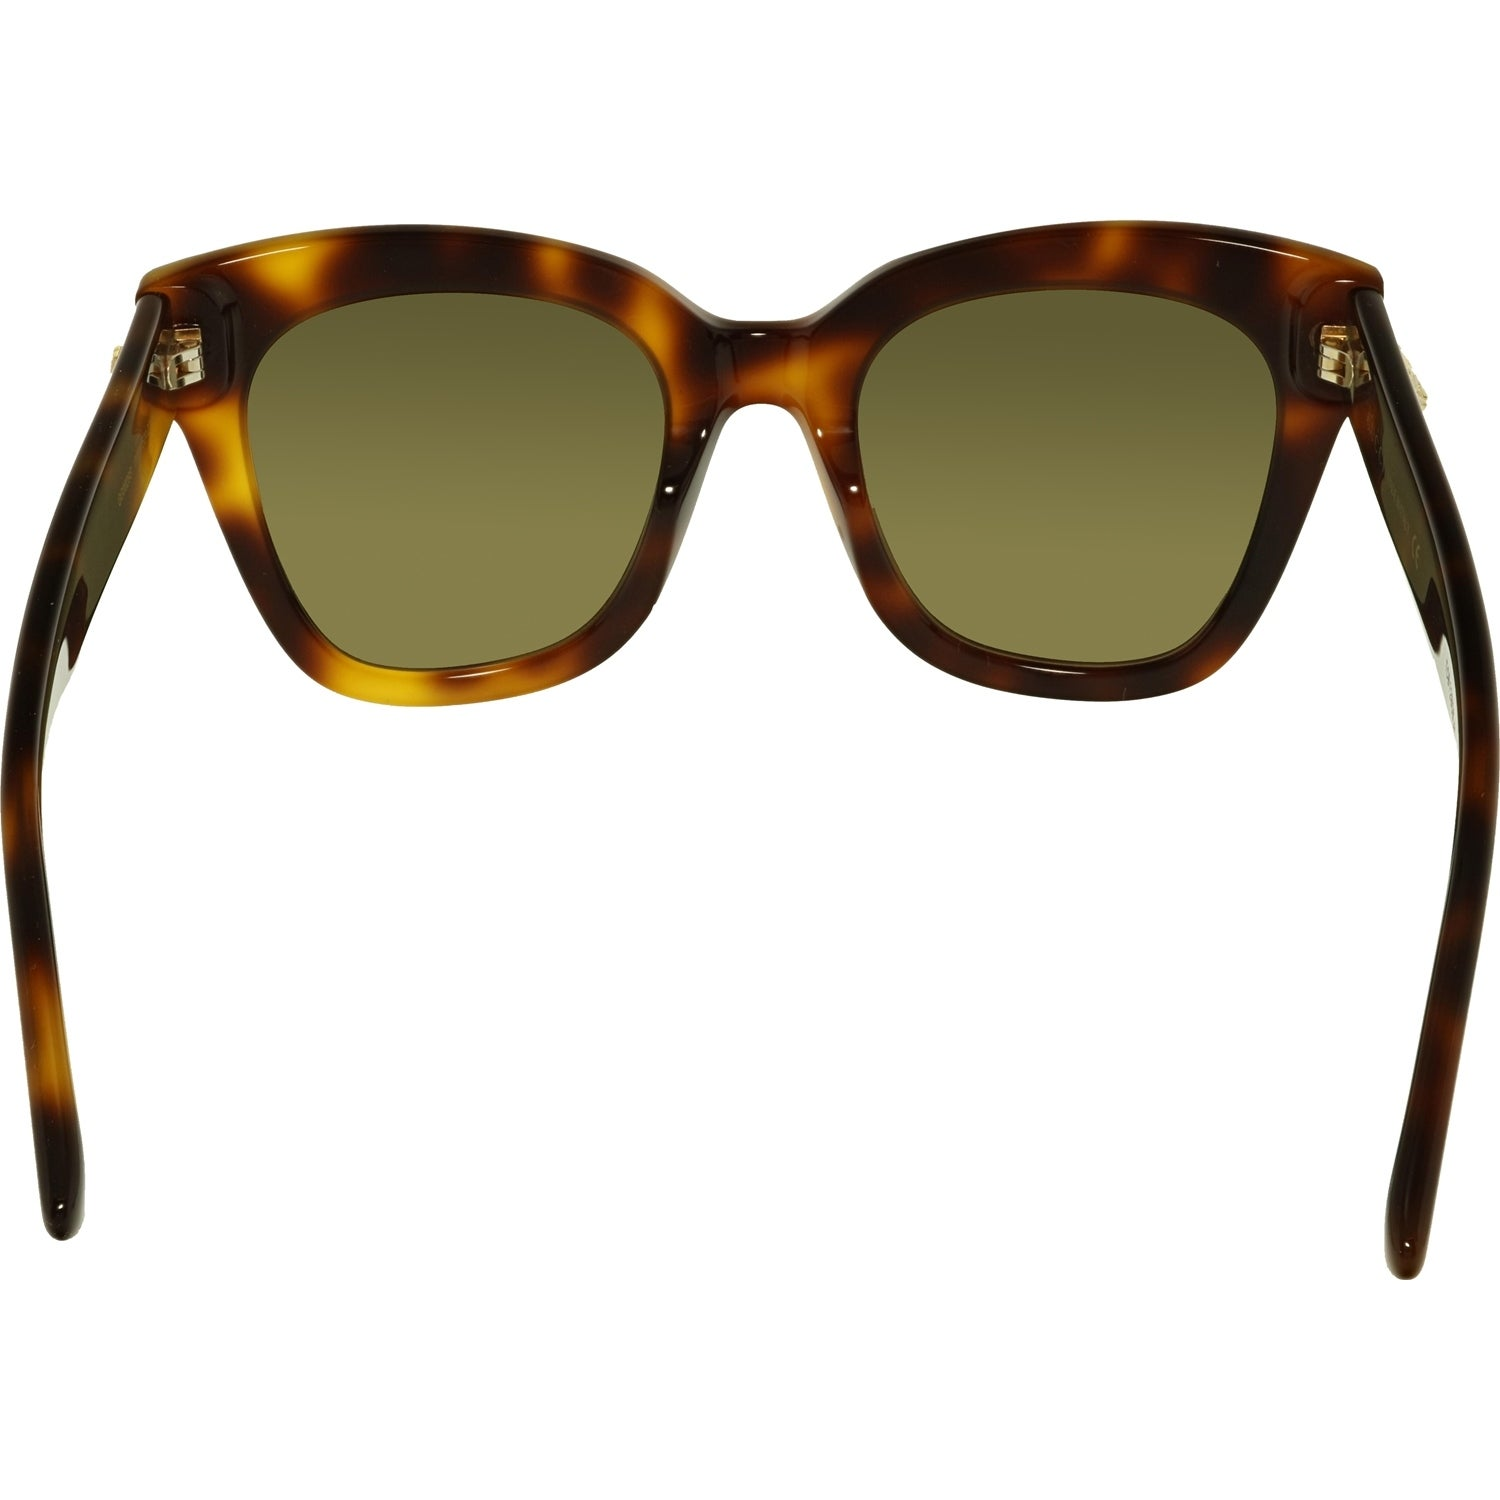 797b5cb84fba6 Shop Gucci Polarized GG0029S-002-50 Tortoiseshell Butterfly Sunglasses - Free  Shipping Today - Overstock - 18900999